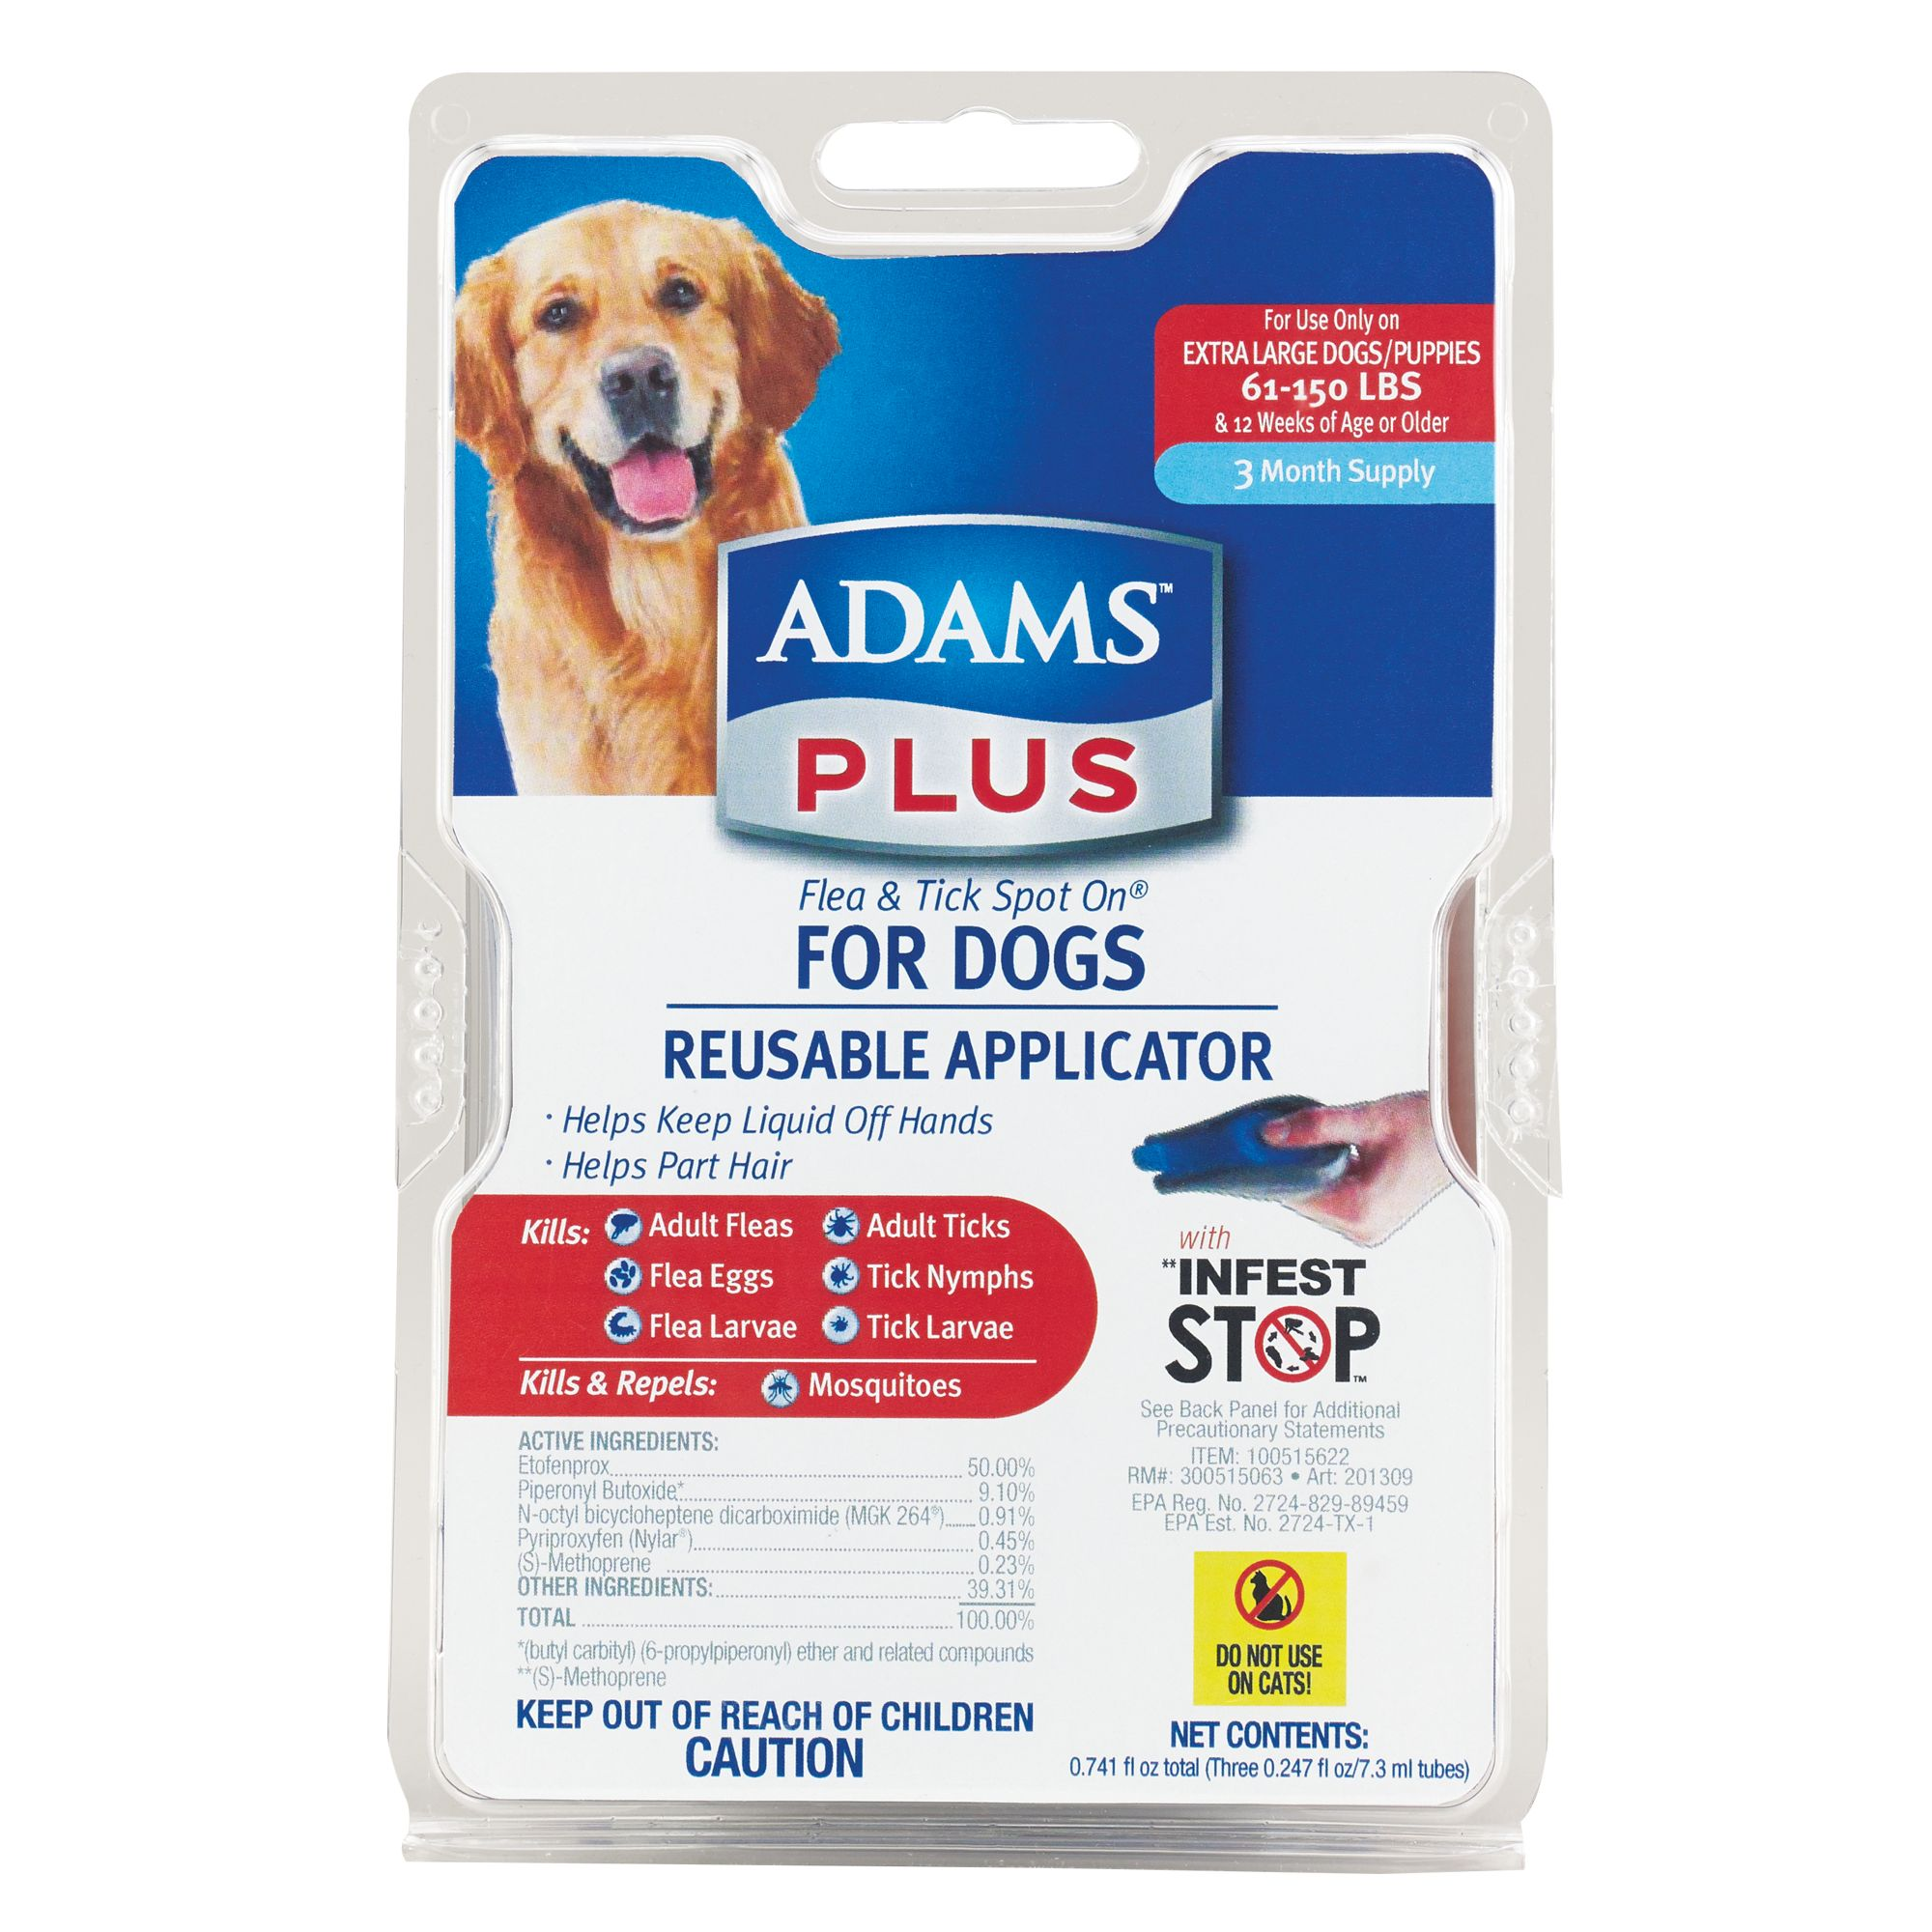 Adams Plus 61 150lb Dog Flea And Tick Protection Size 61 Lbs And Over